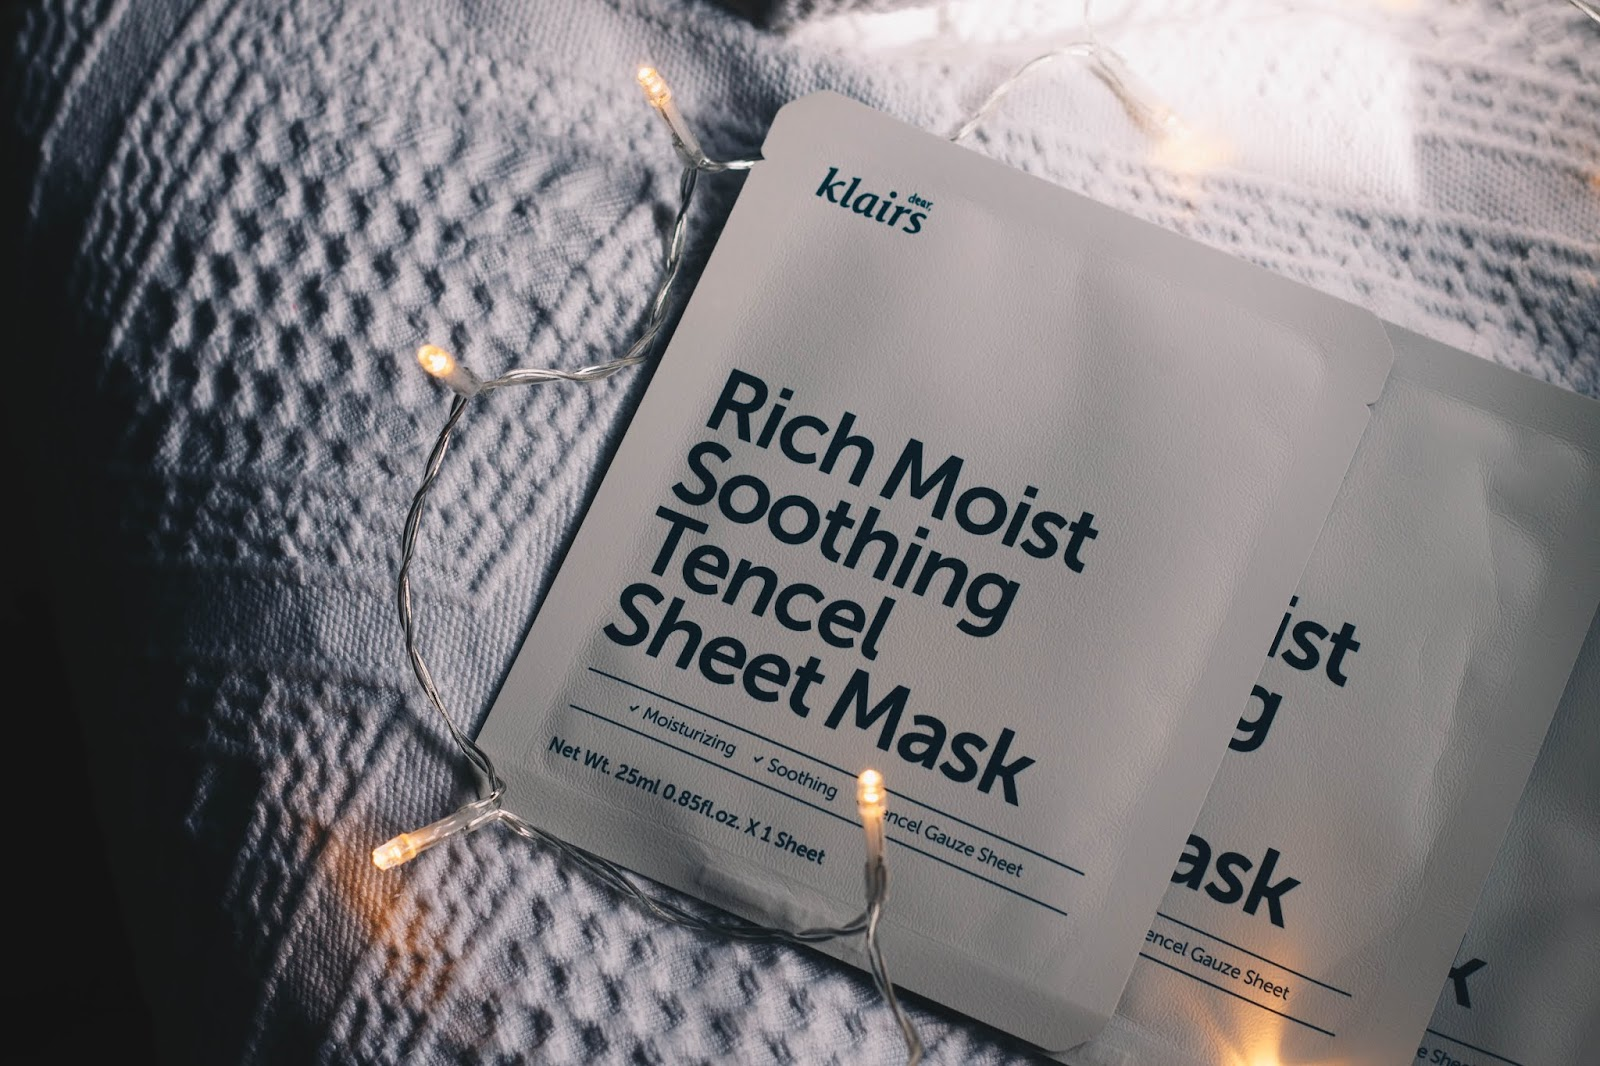 Klairs is becoming one of my favorite Korean brands, and this time I tried a soothing and moisturizing sheet mask. It's formulated with aloe vera, panthenol, hyaluronic acid and other moisturizing ingredients to energize and moisturize the skin. Klairs respects the beauty of the environment and animals, and as such, this is a vegan mask (not all the brand's products are, but this is a 100% cruelty-free brand). Click to read more!